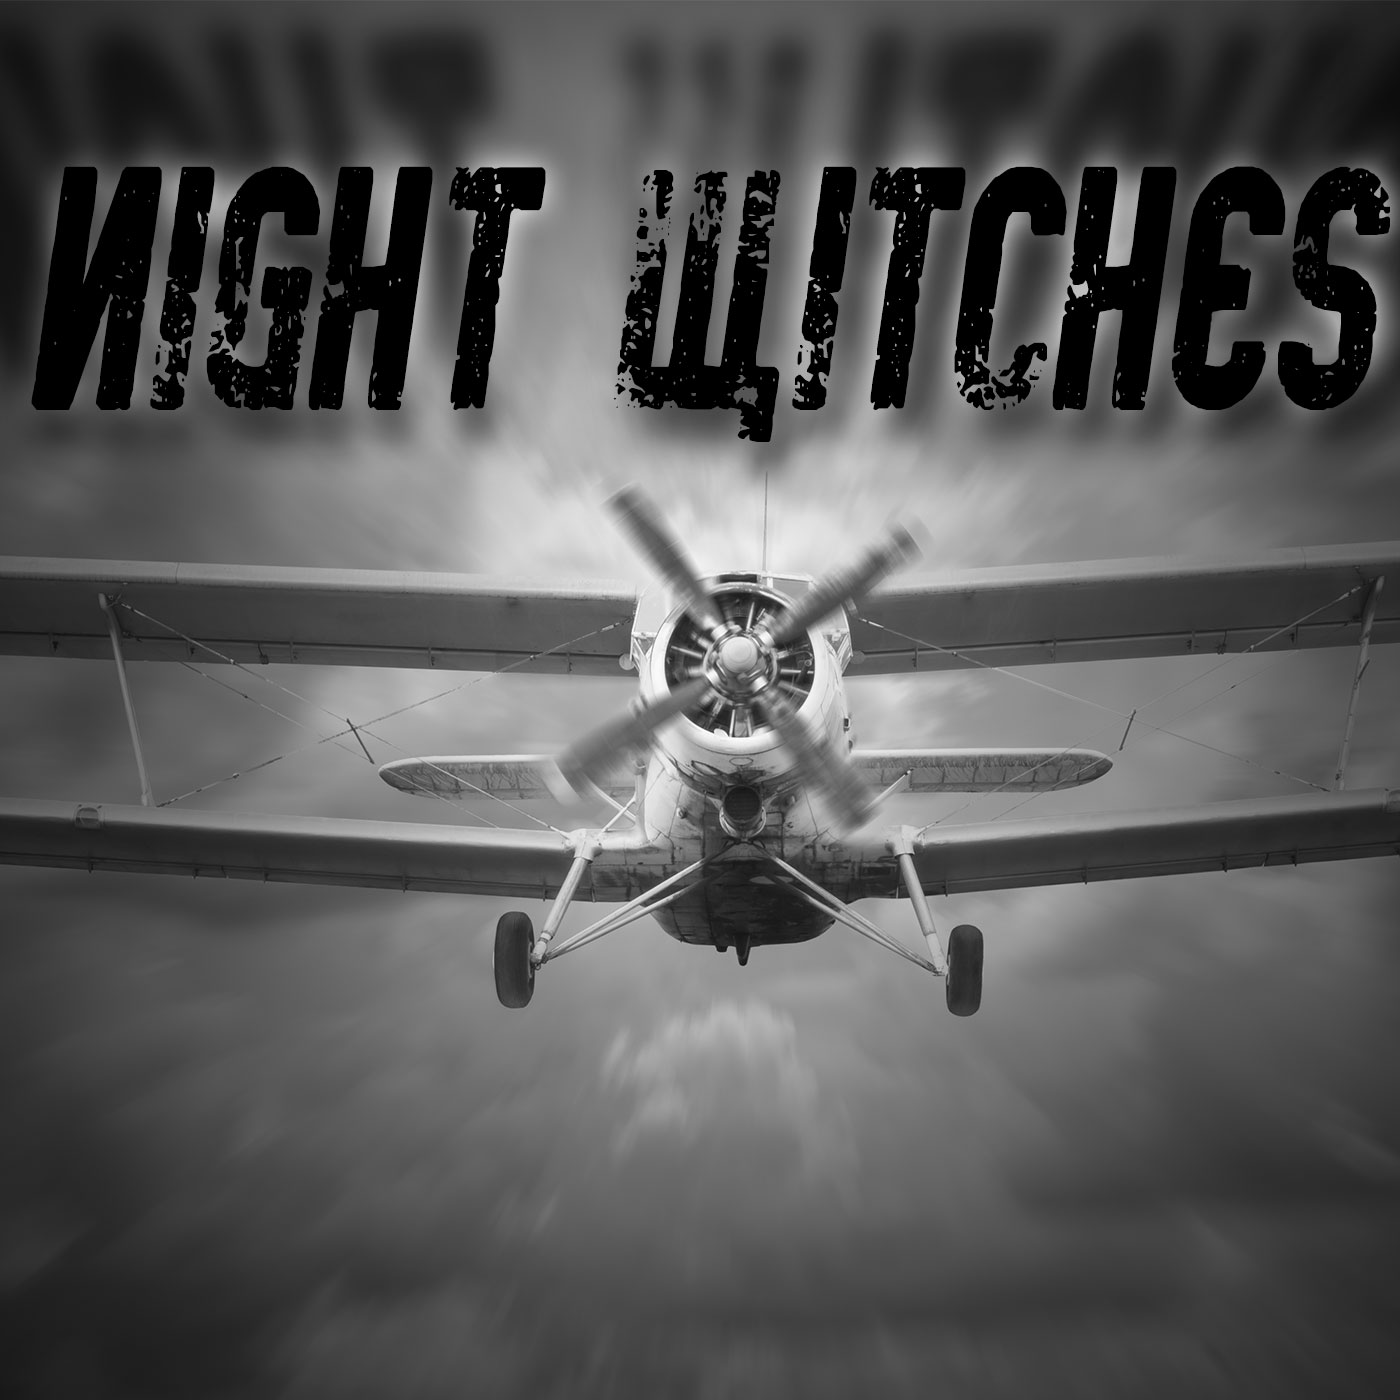 Night-Witches.jpg